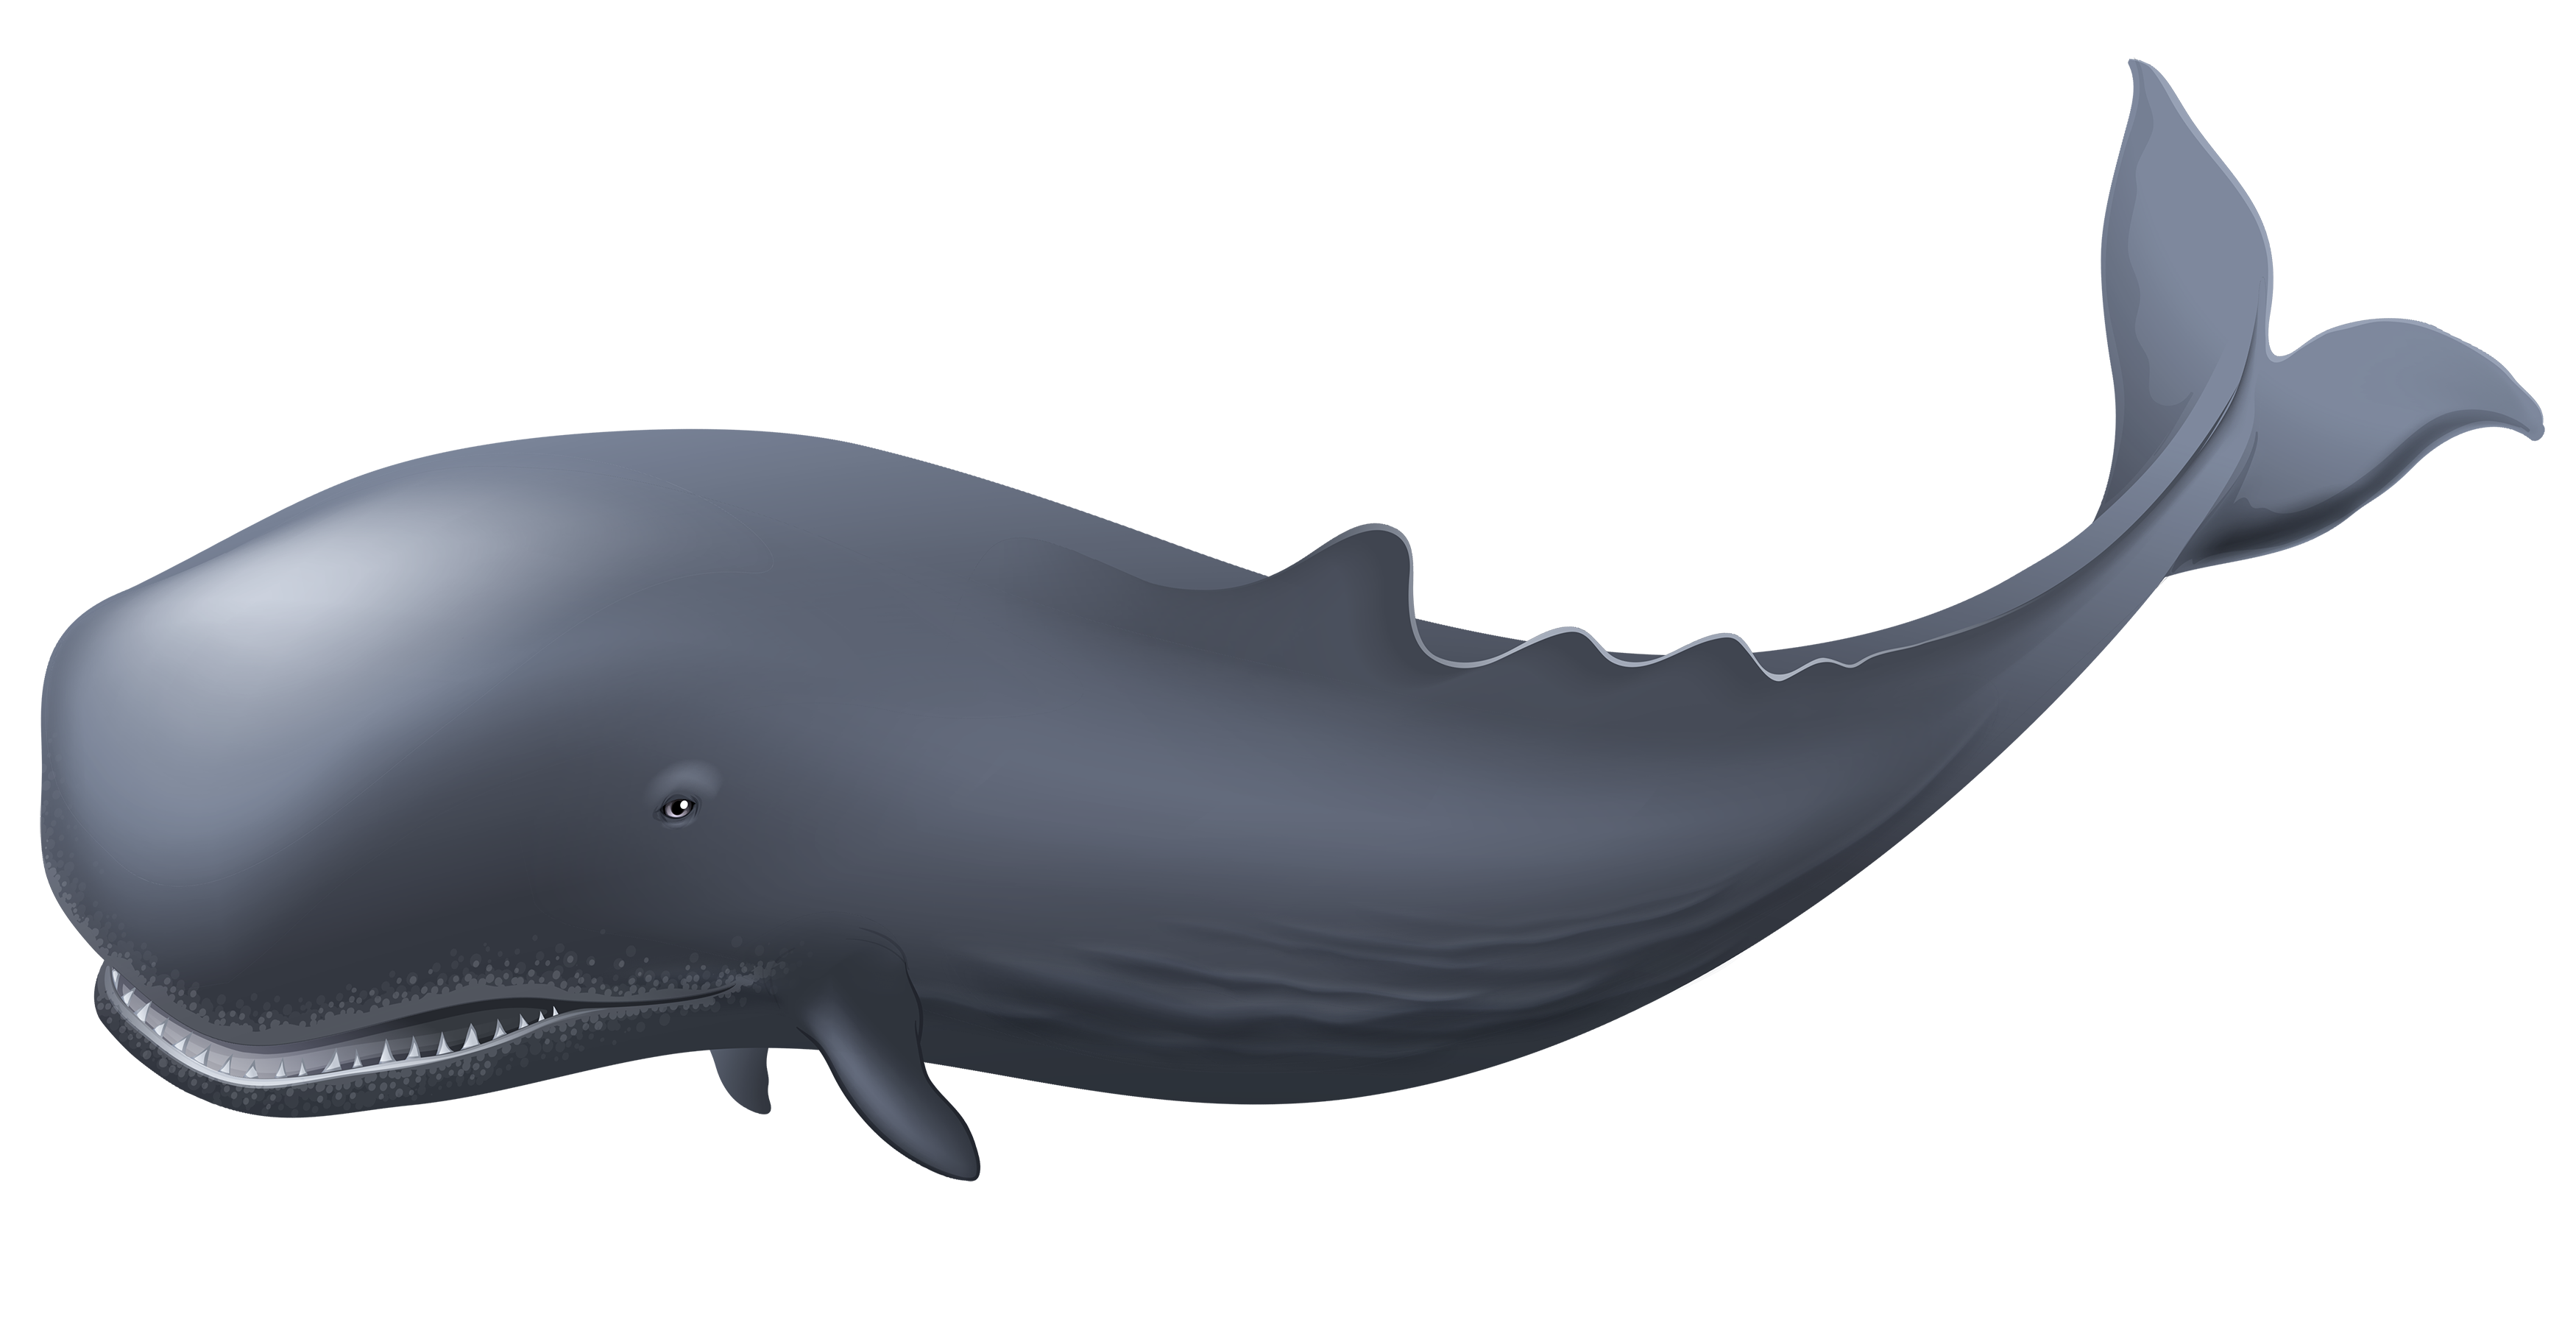 Whale png best web. Dolphin clipart underwater